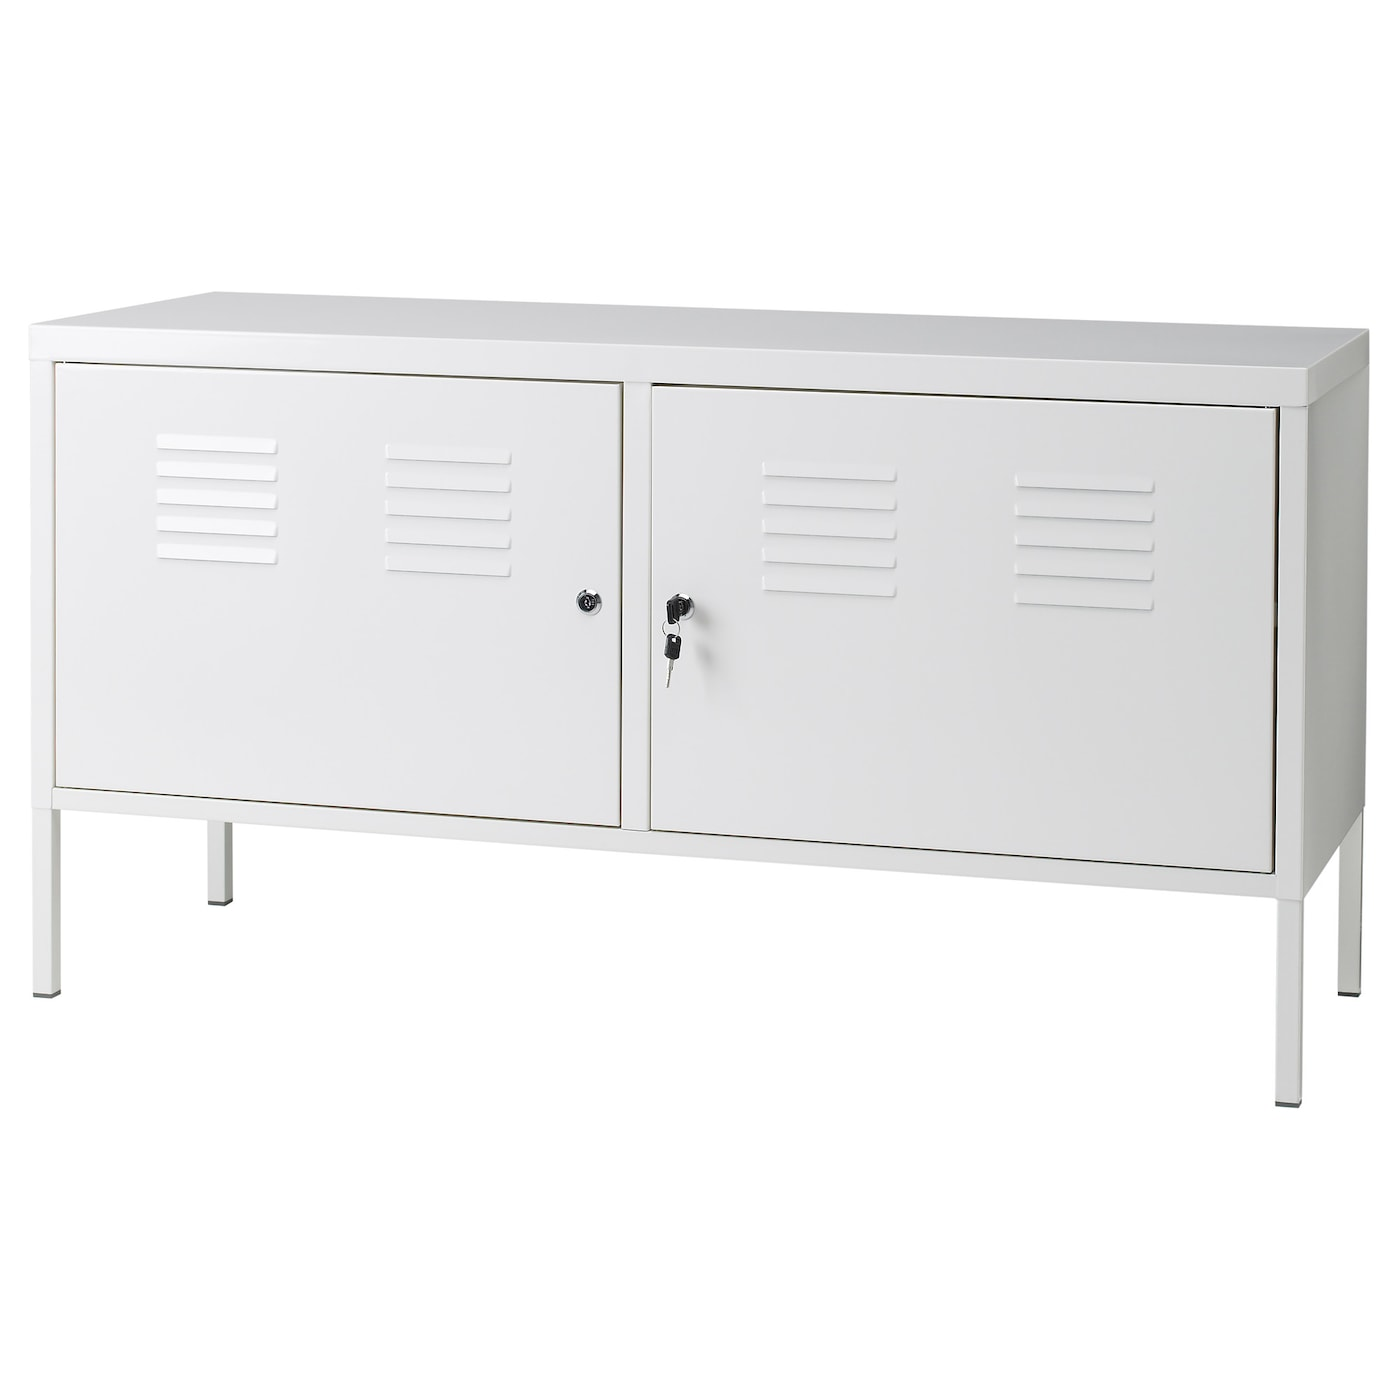 Ikea ps cabinet white 119x63 cm ikea for Armario metalico ikea